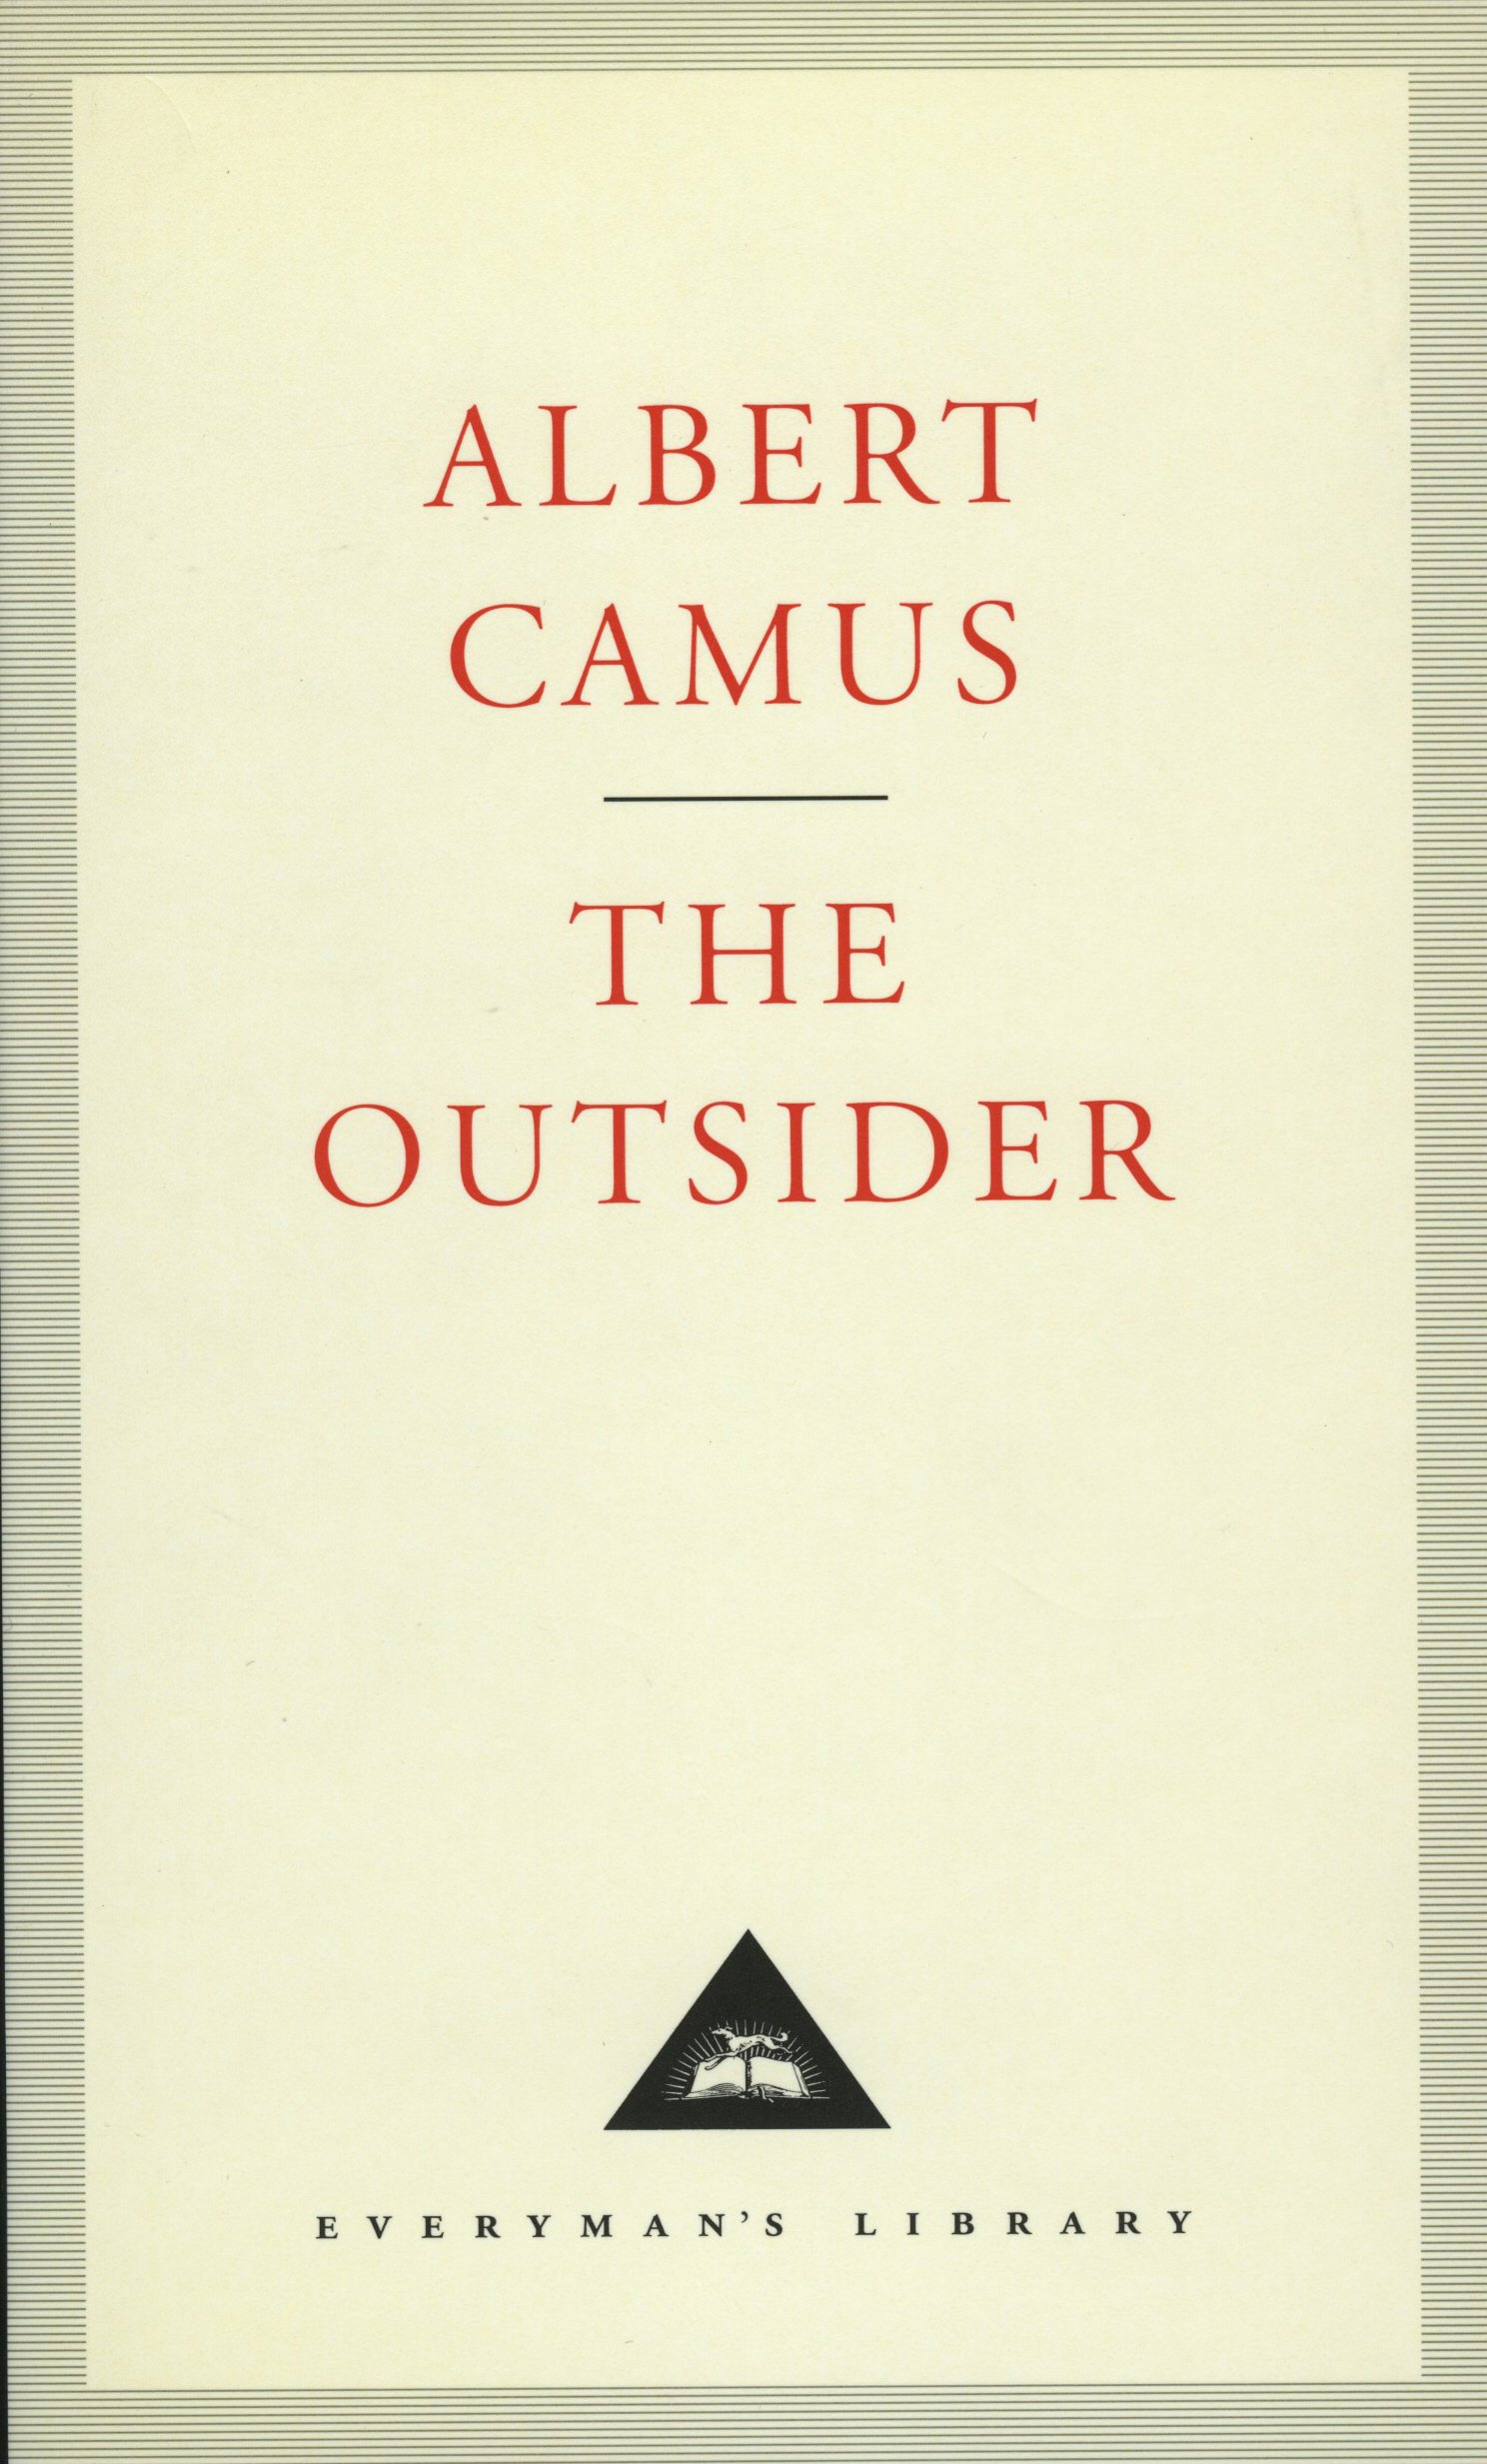 outsider everyman s library classics albert camus joseph outsider everyman s library classics albert camus joseph laredo 9781857151398 com books